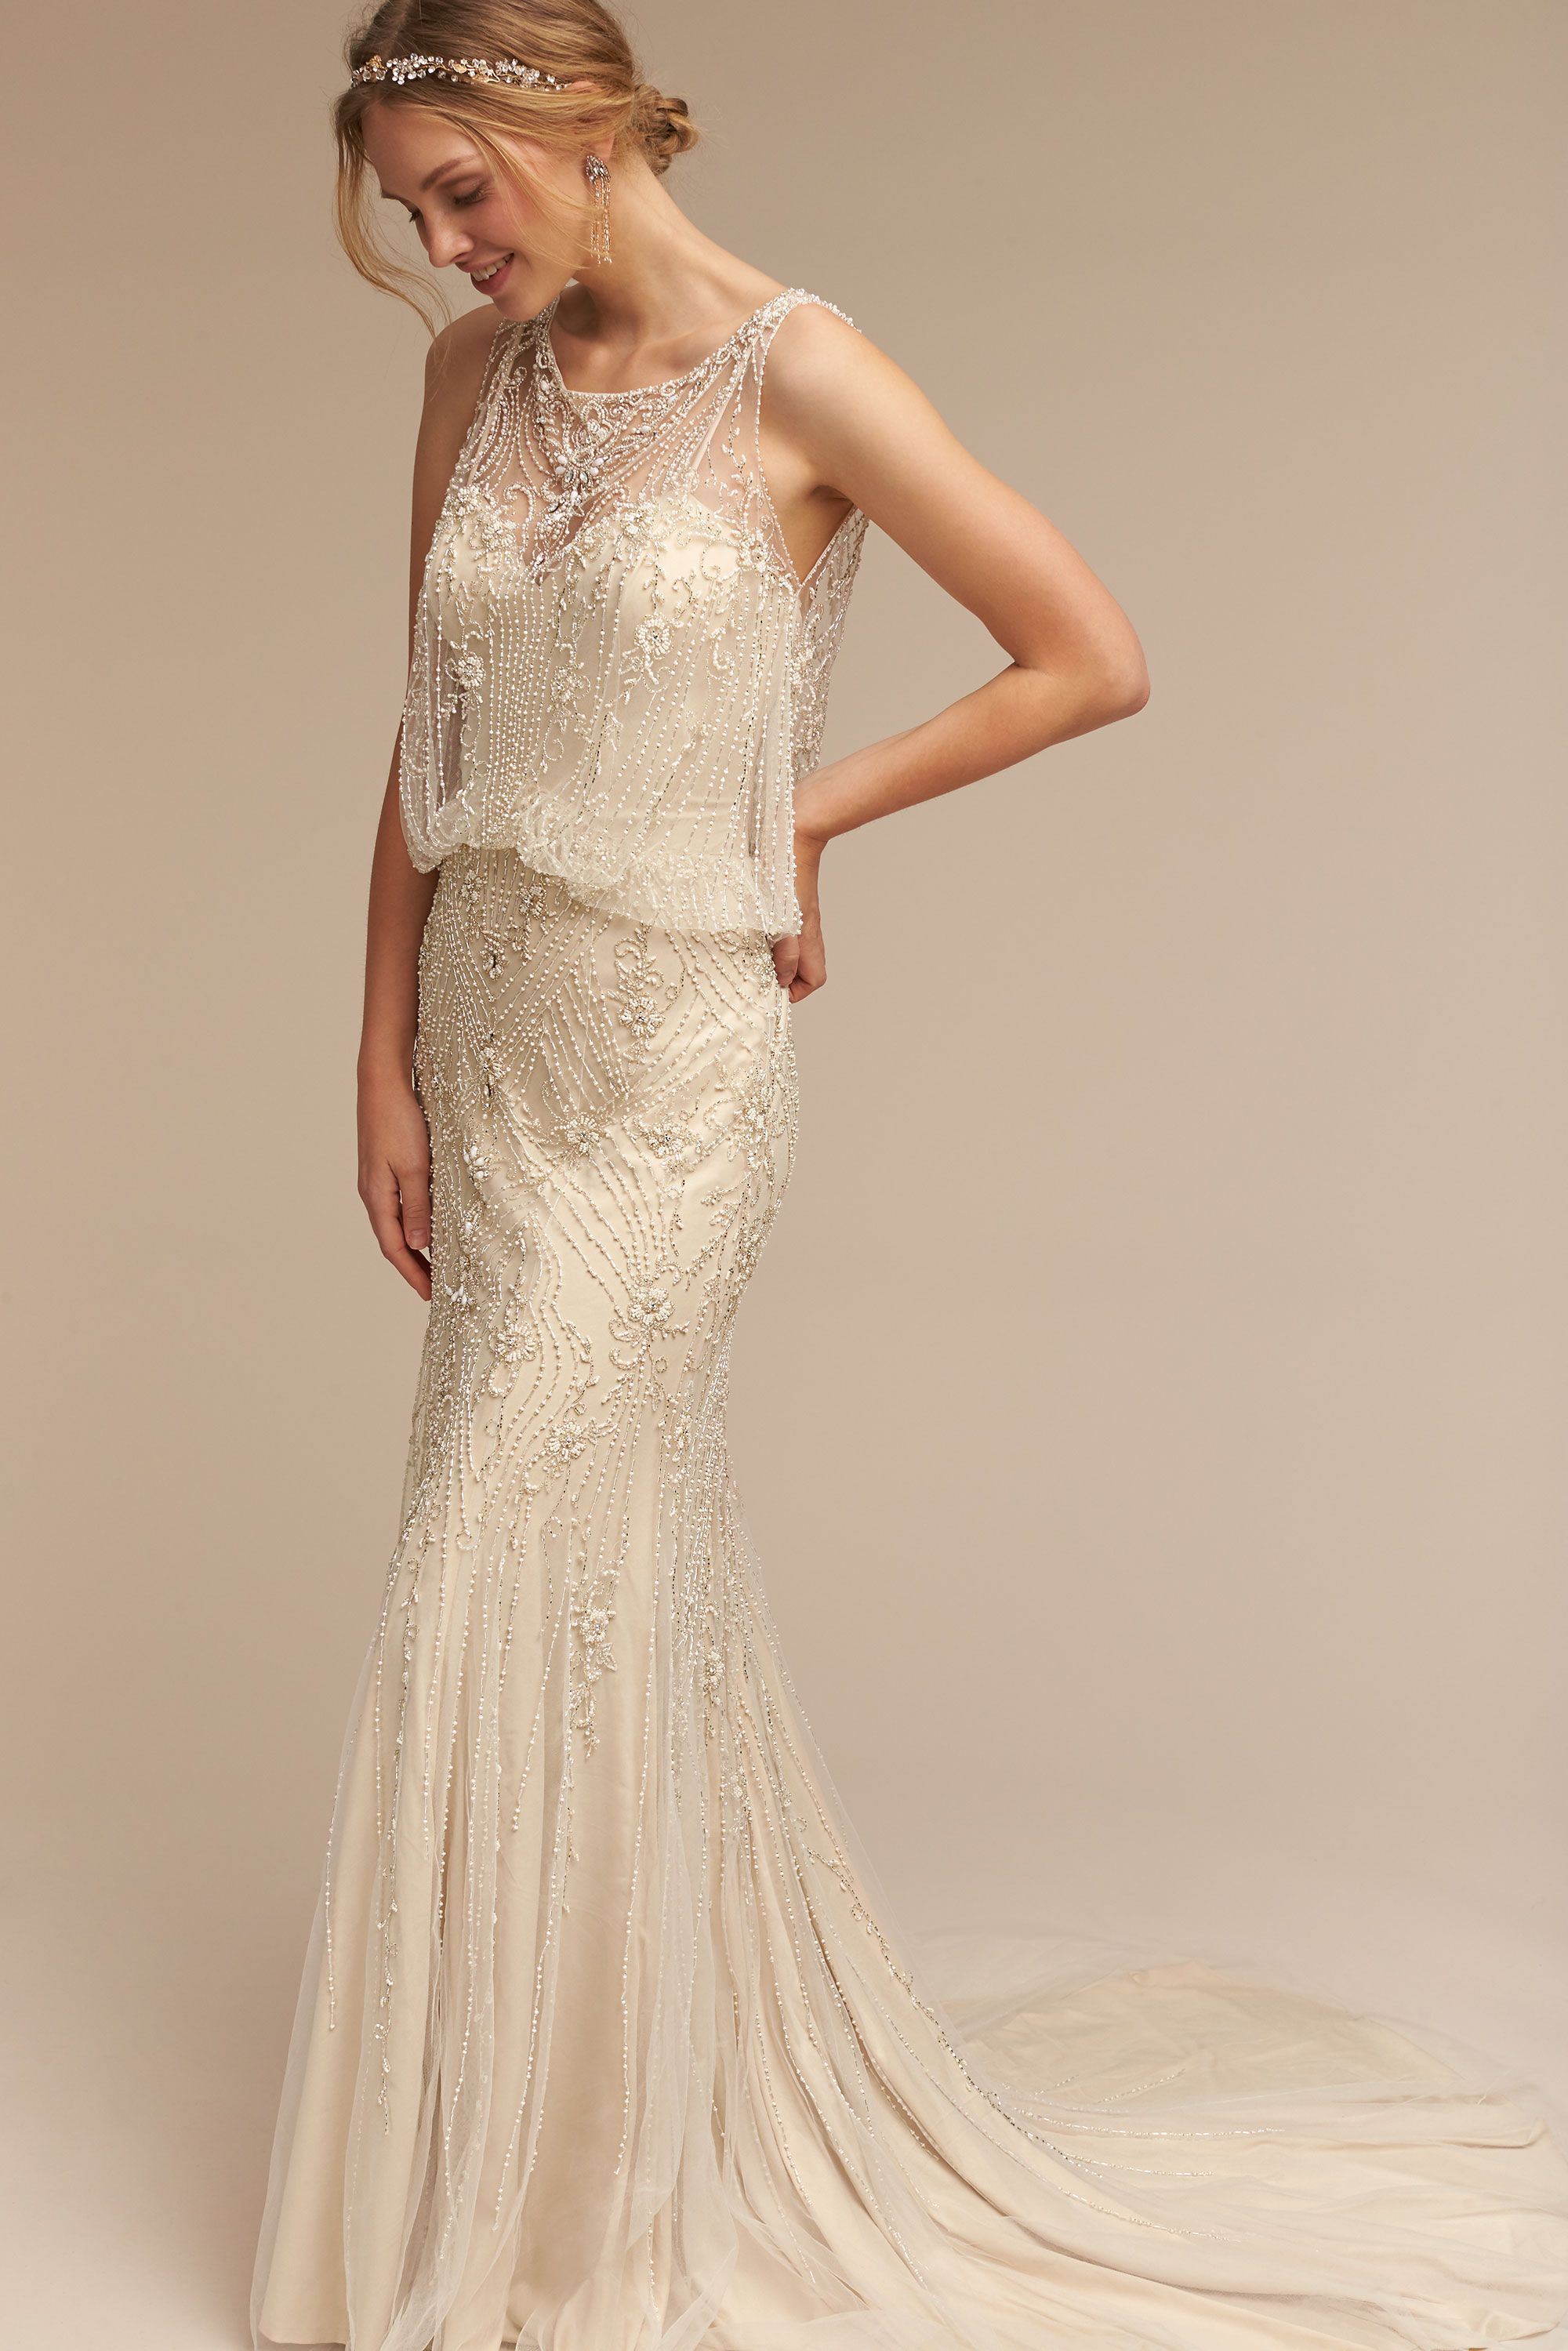 Dreamy BHLDN Wedding Dresses - Jacinda Gown